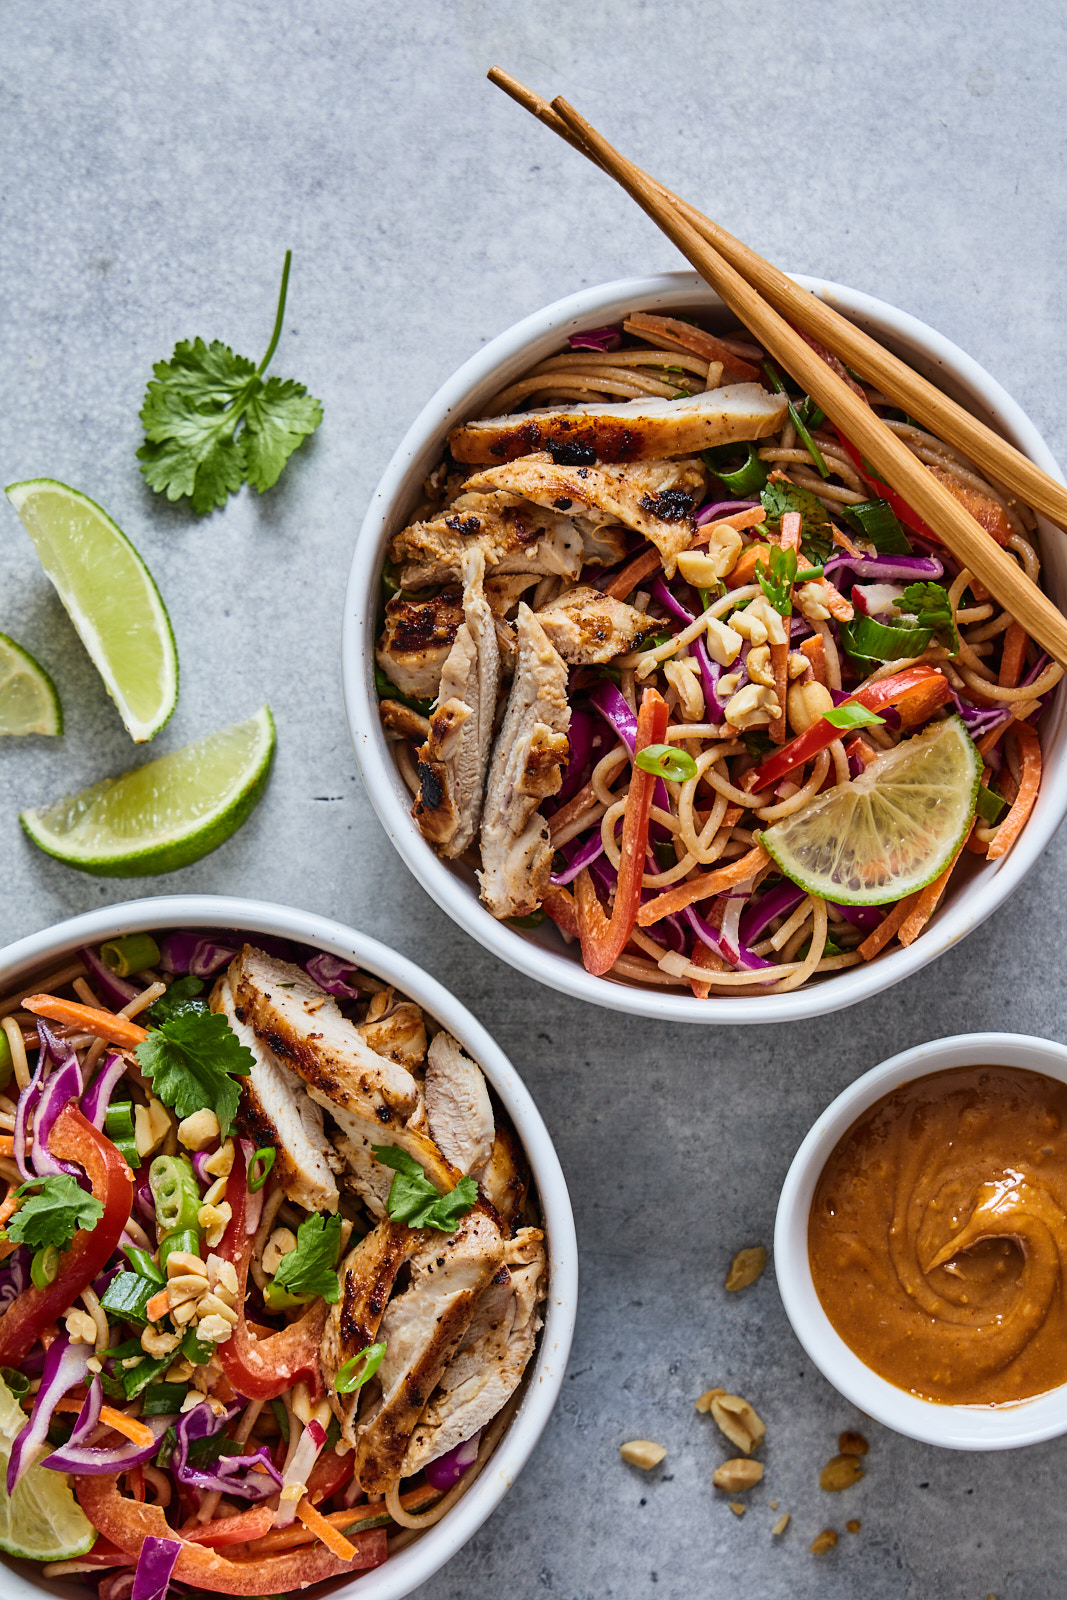 Cold Peanut Noodle Salad With Grilled Chicken